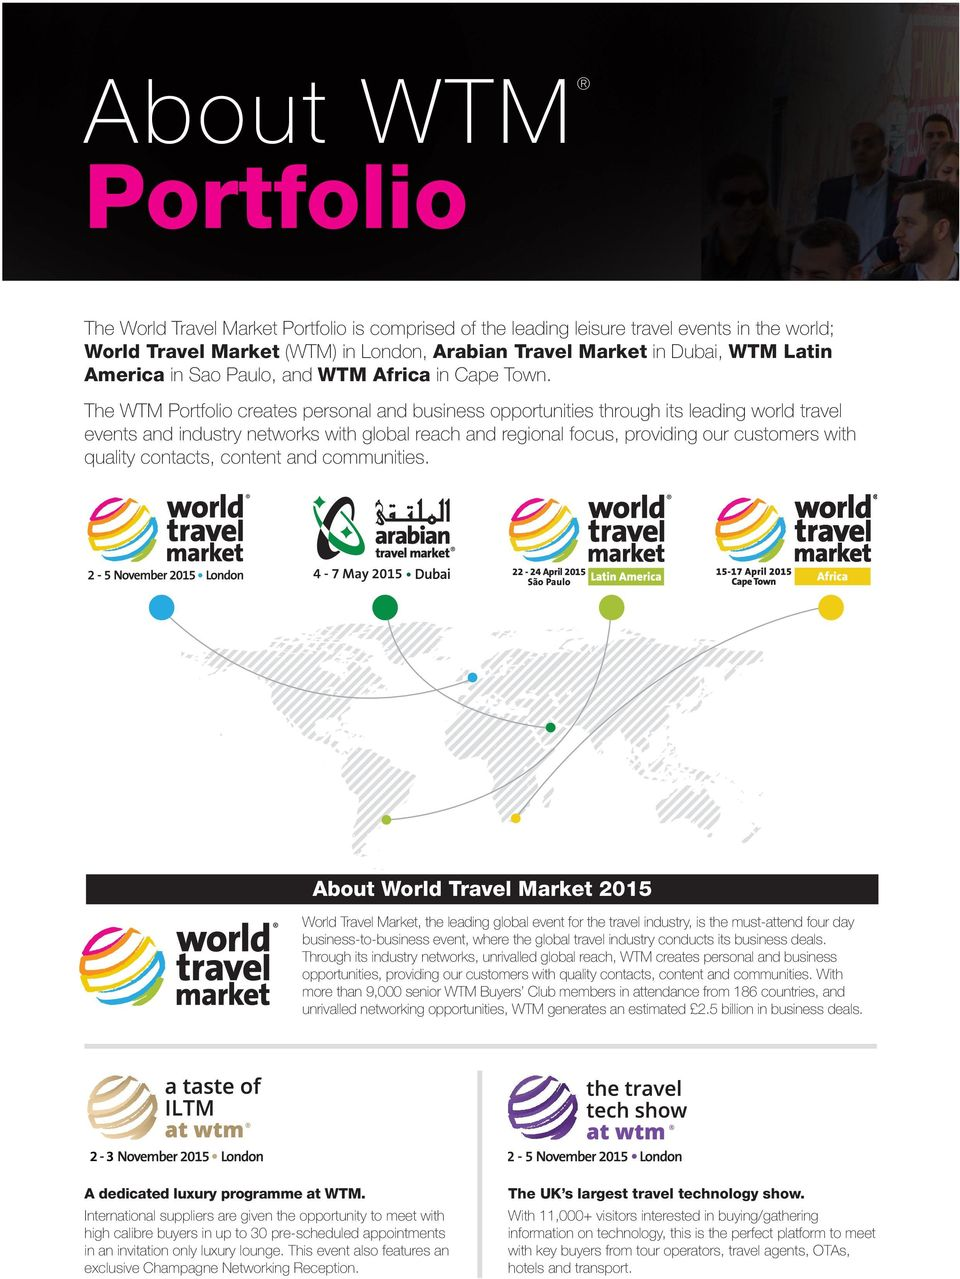 The WTM Portfolio creates personal and business opportunities through its leading world travel events and industry networks with global reach and regional focus, providing our customers with quality